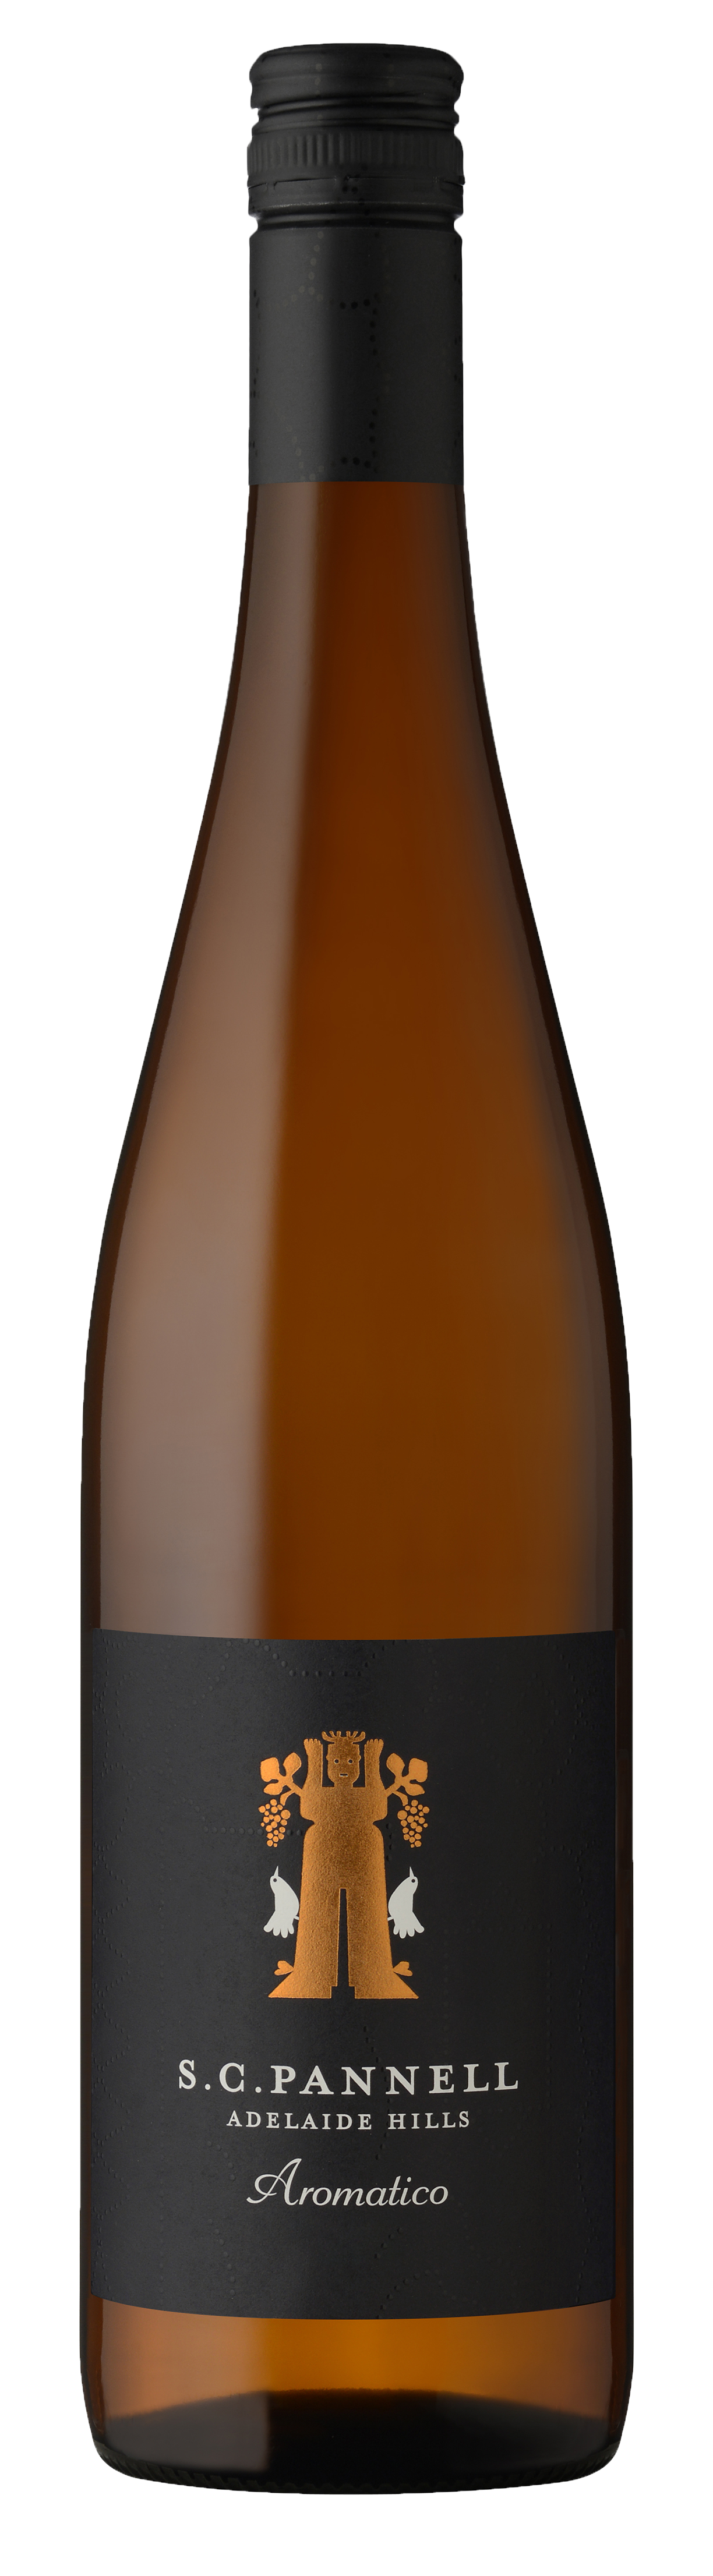 S.C.Pannell, Adelaide Hills Aromatico 2017